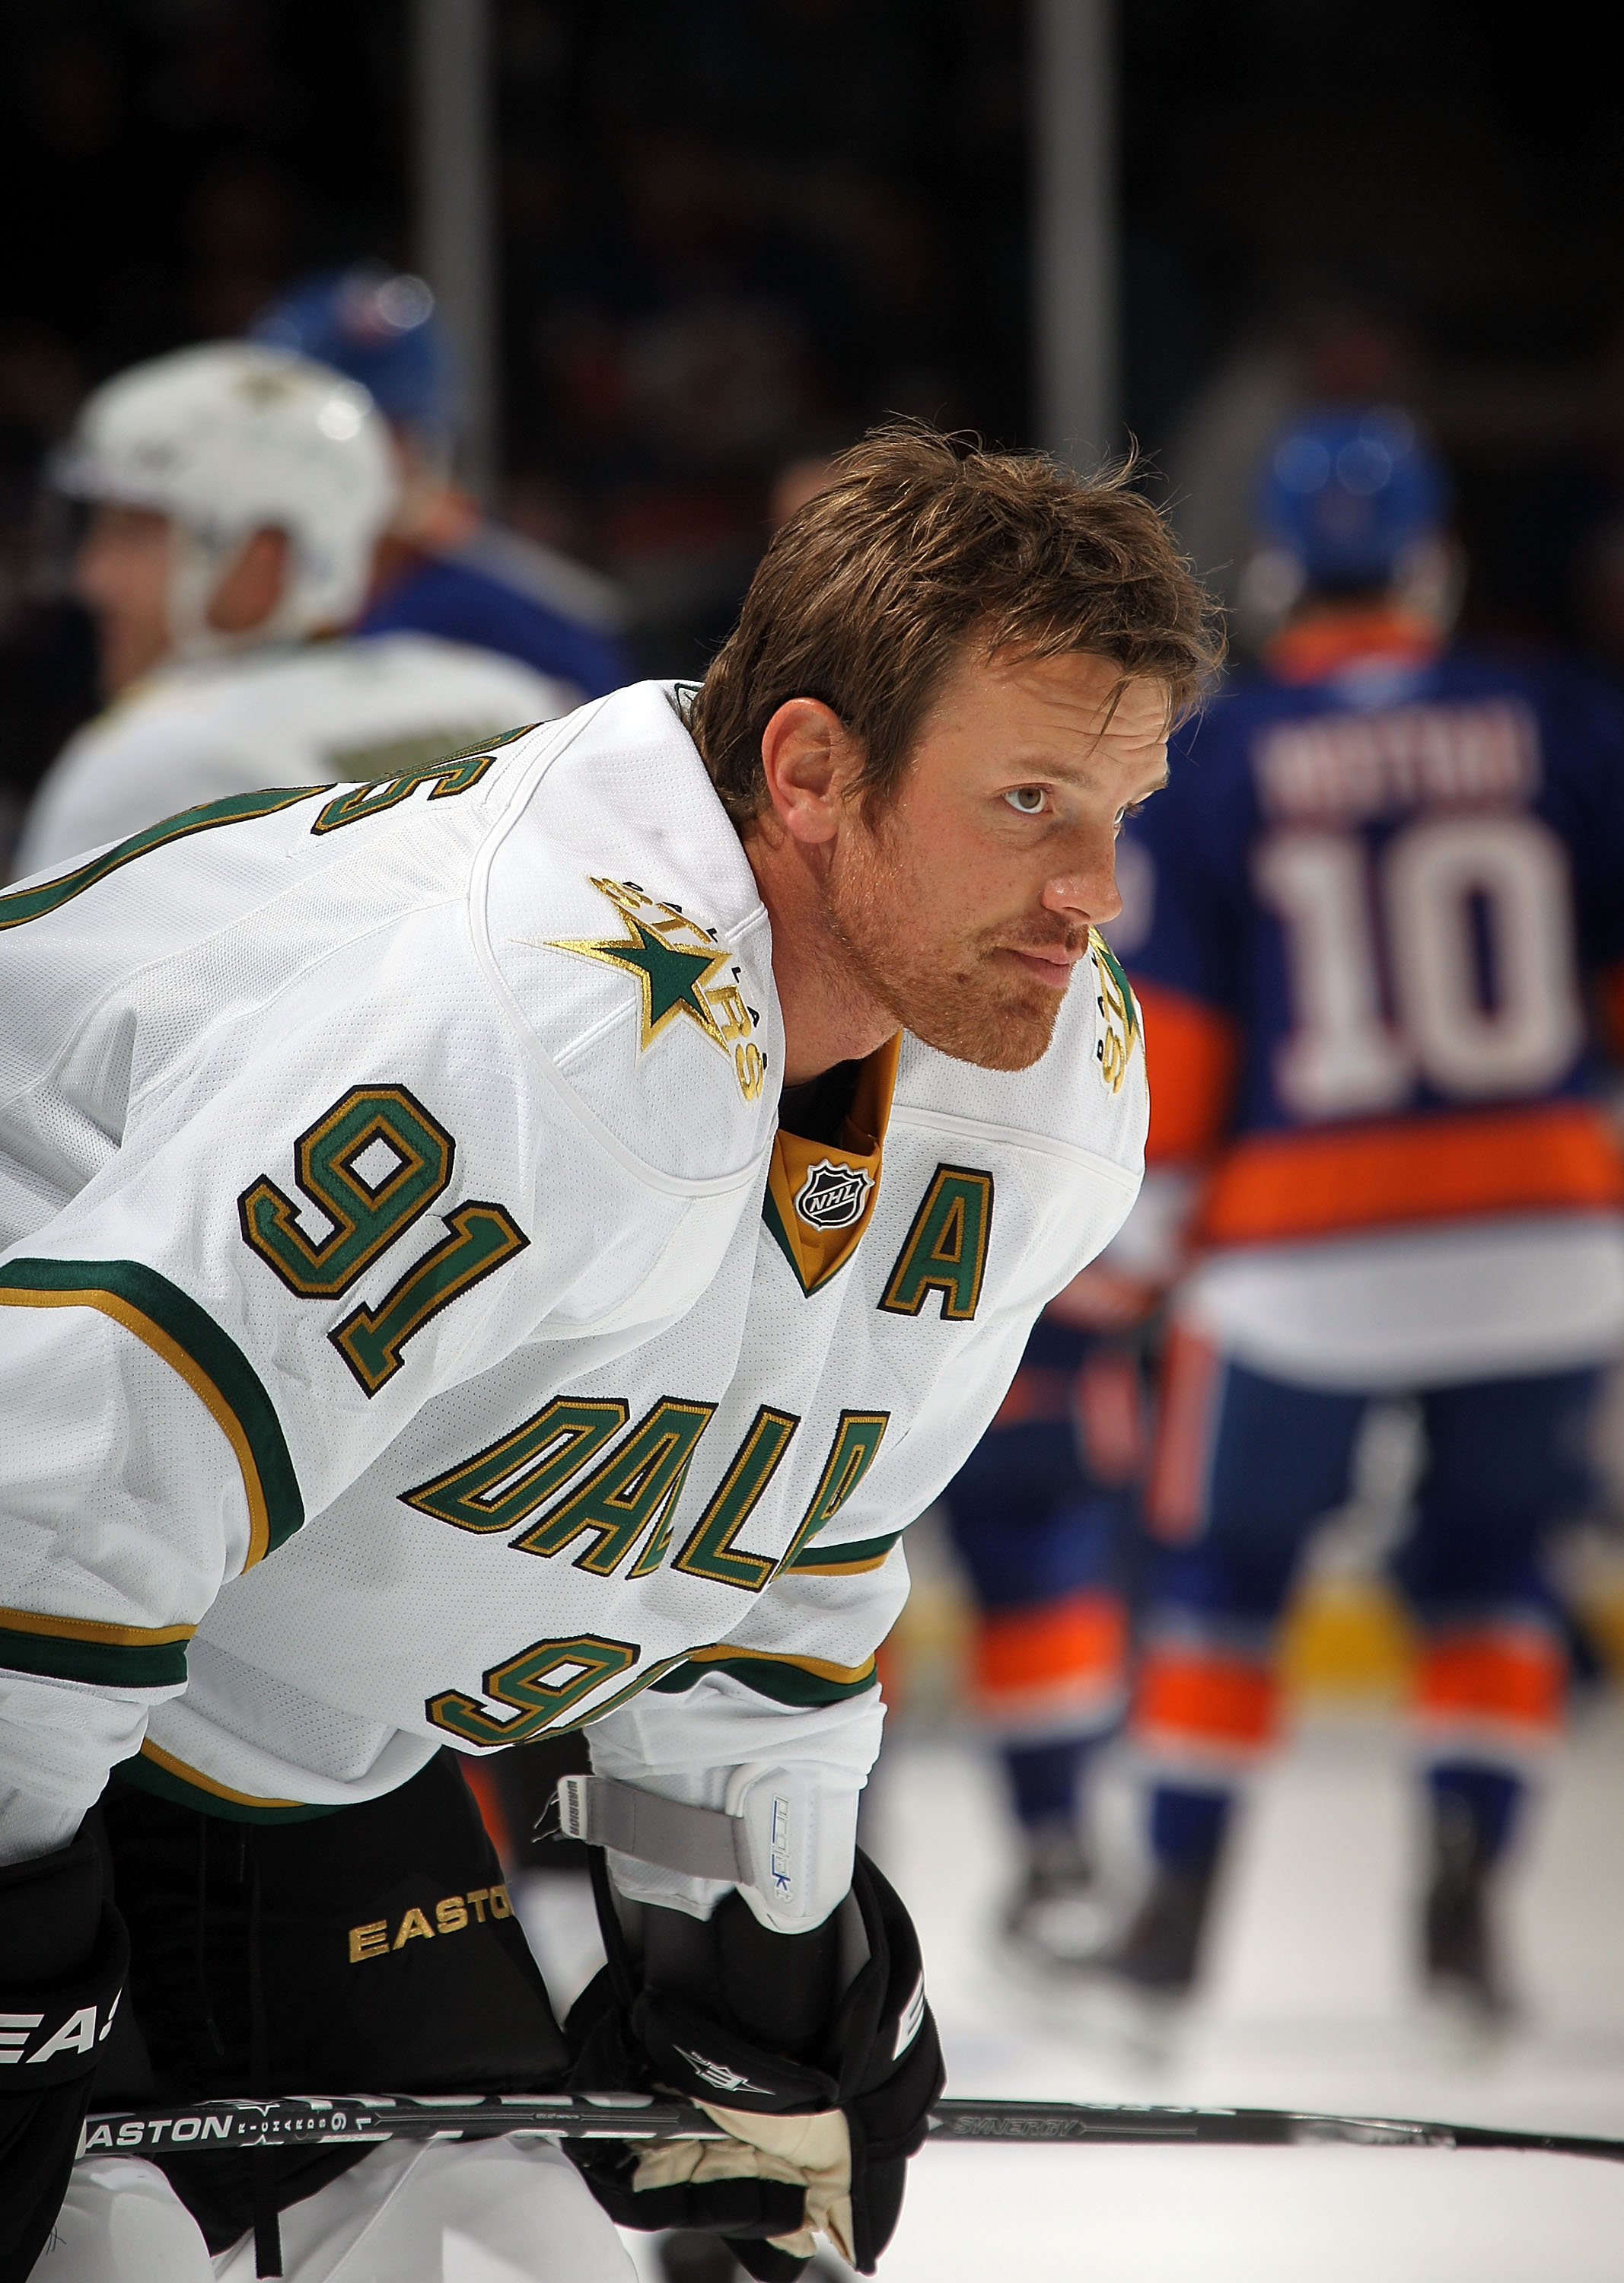 UNIONDALE, NY - OCTOBER 09:  Brad Richards #91 of the Dallas Stars in the pre-game skate against the New York Islanders at the Nassau Coliseum on October 9, 2010 in Uniondale, New York.  (Photo by Bruce Bennett/Getty Images)